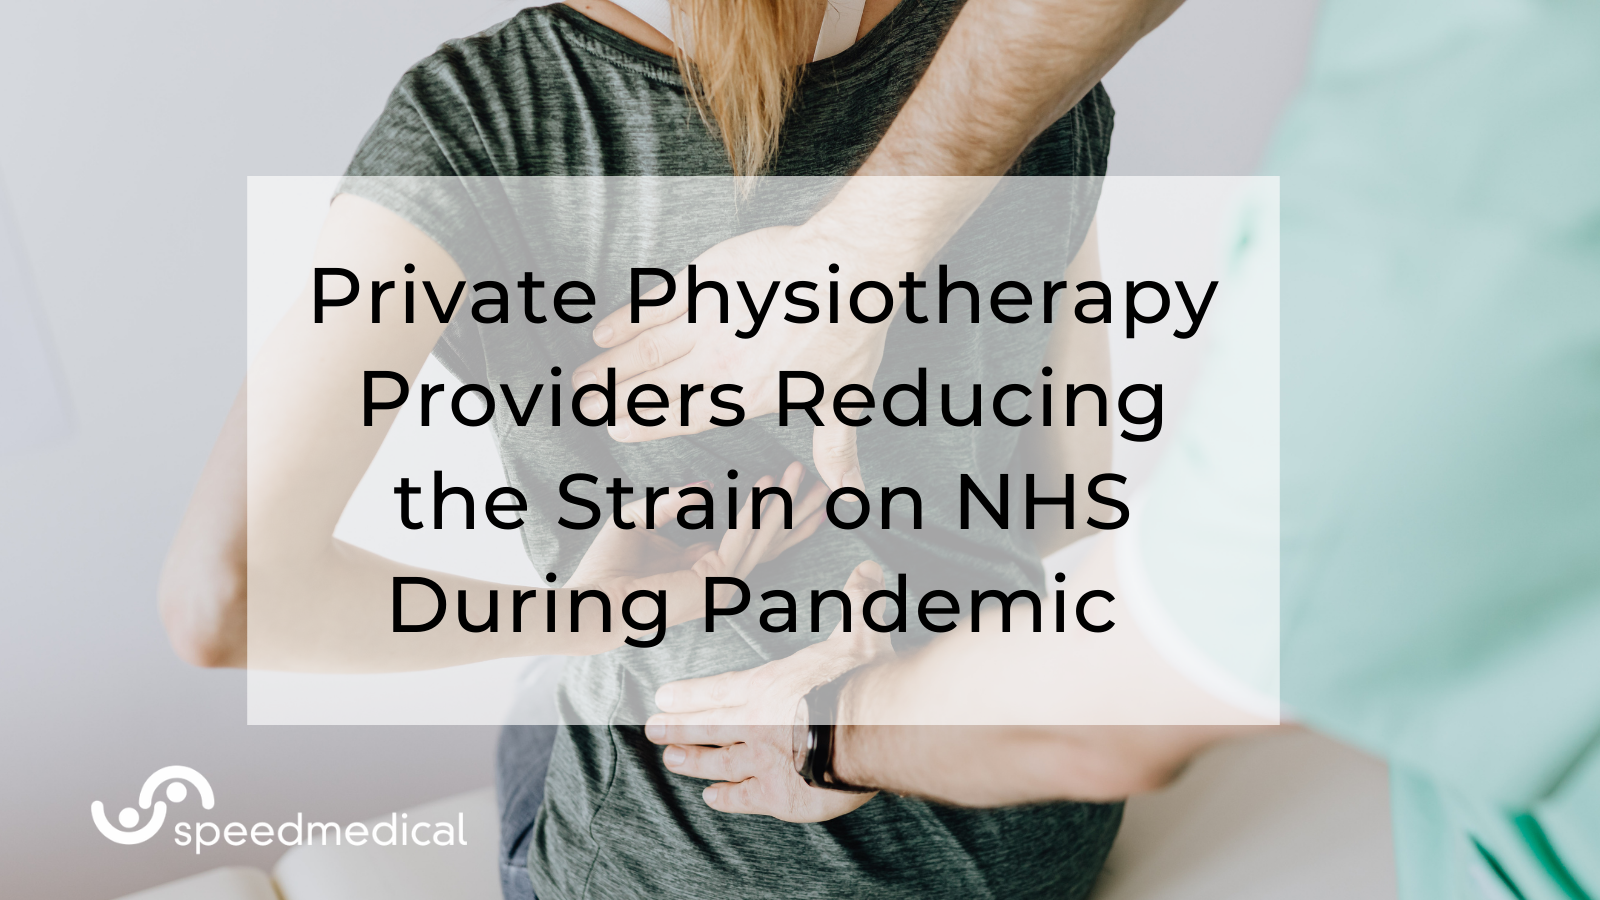 Private Physiotherapy Providers Reducing the Strain on NHS During Pandemic